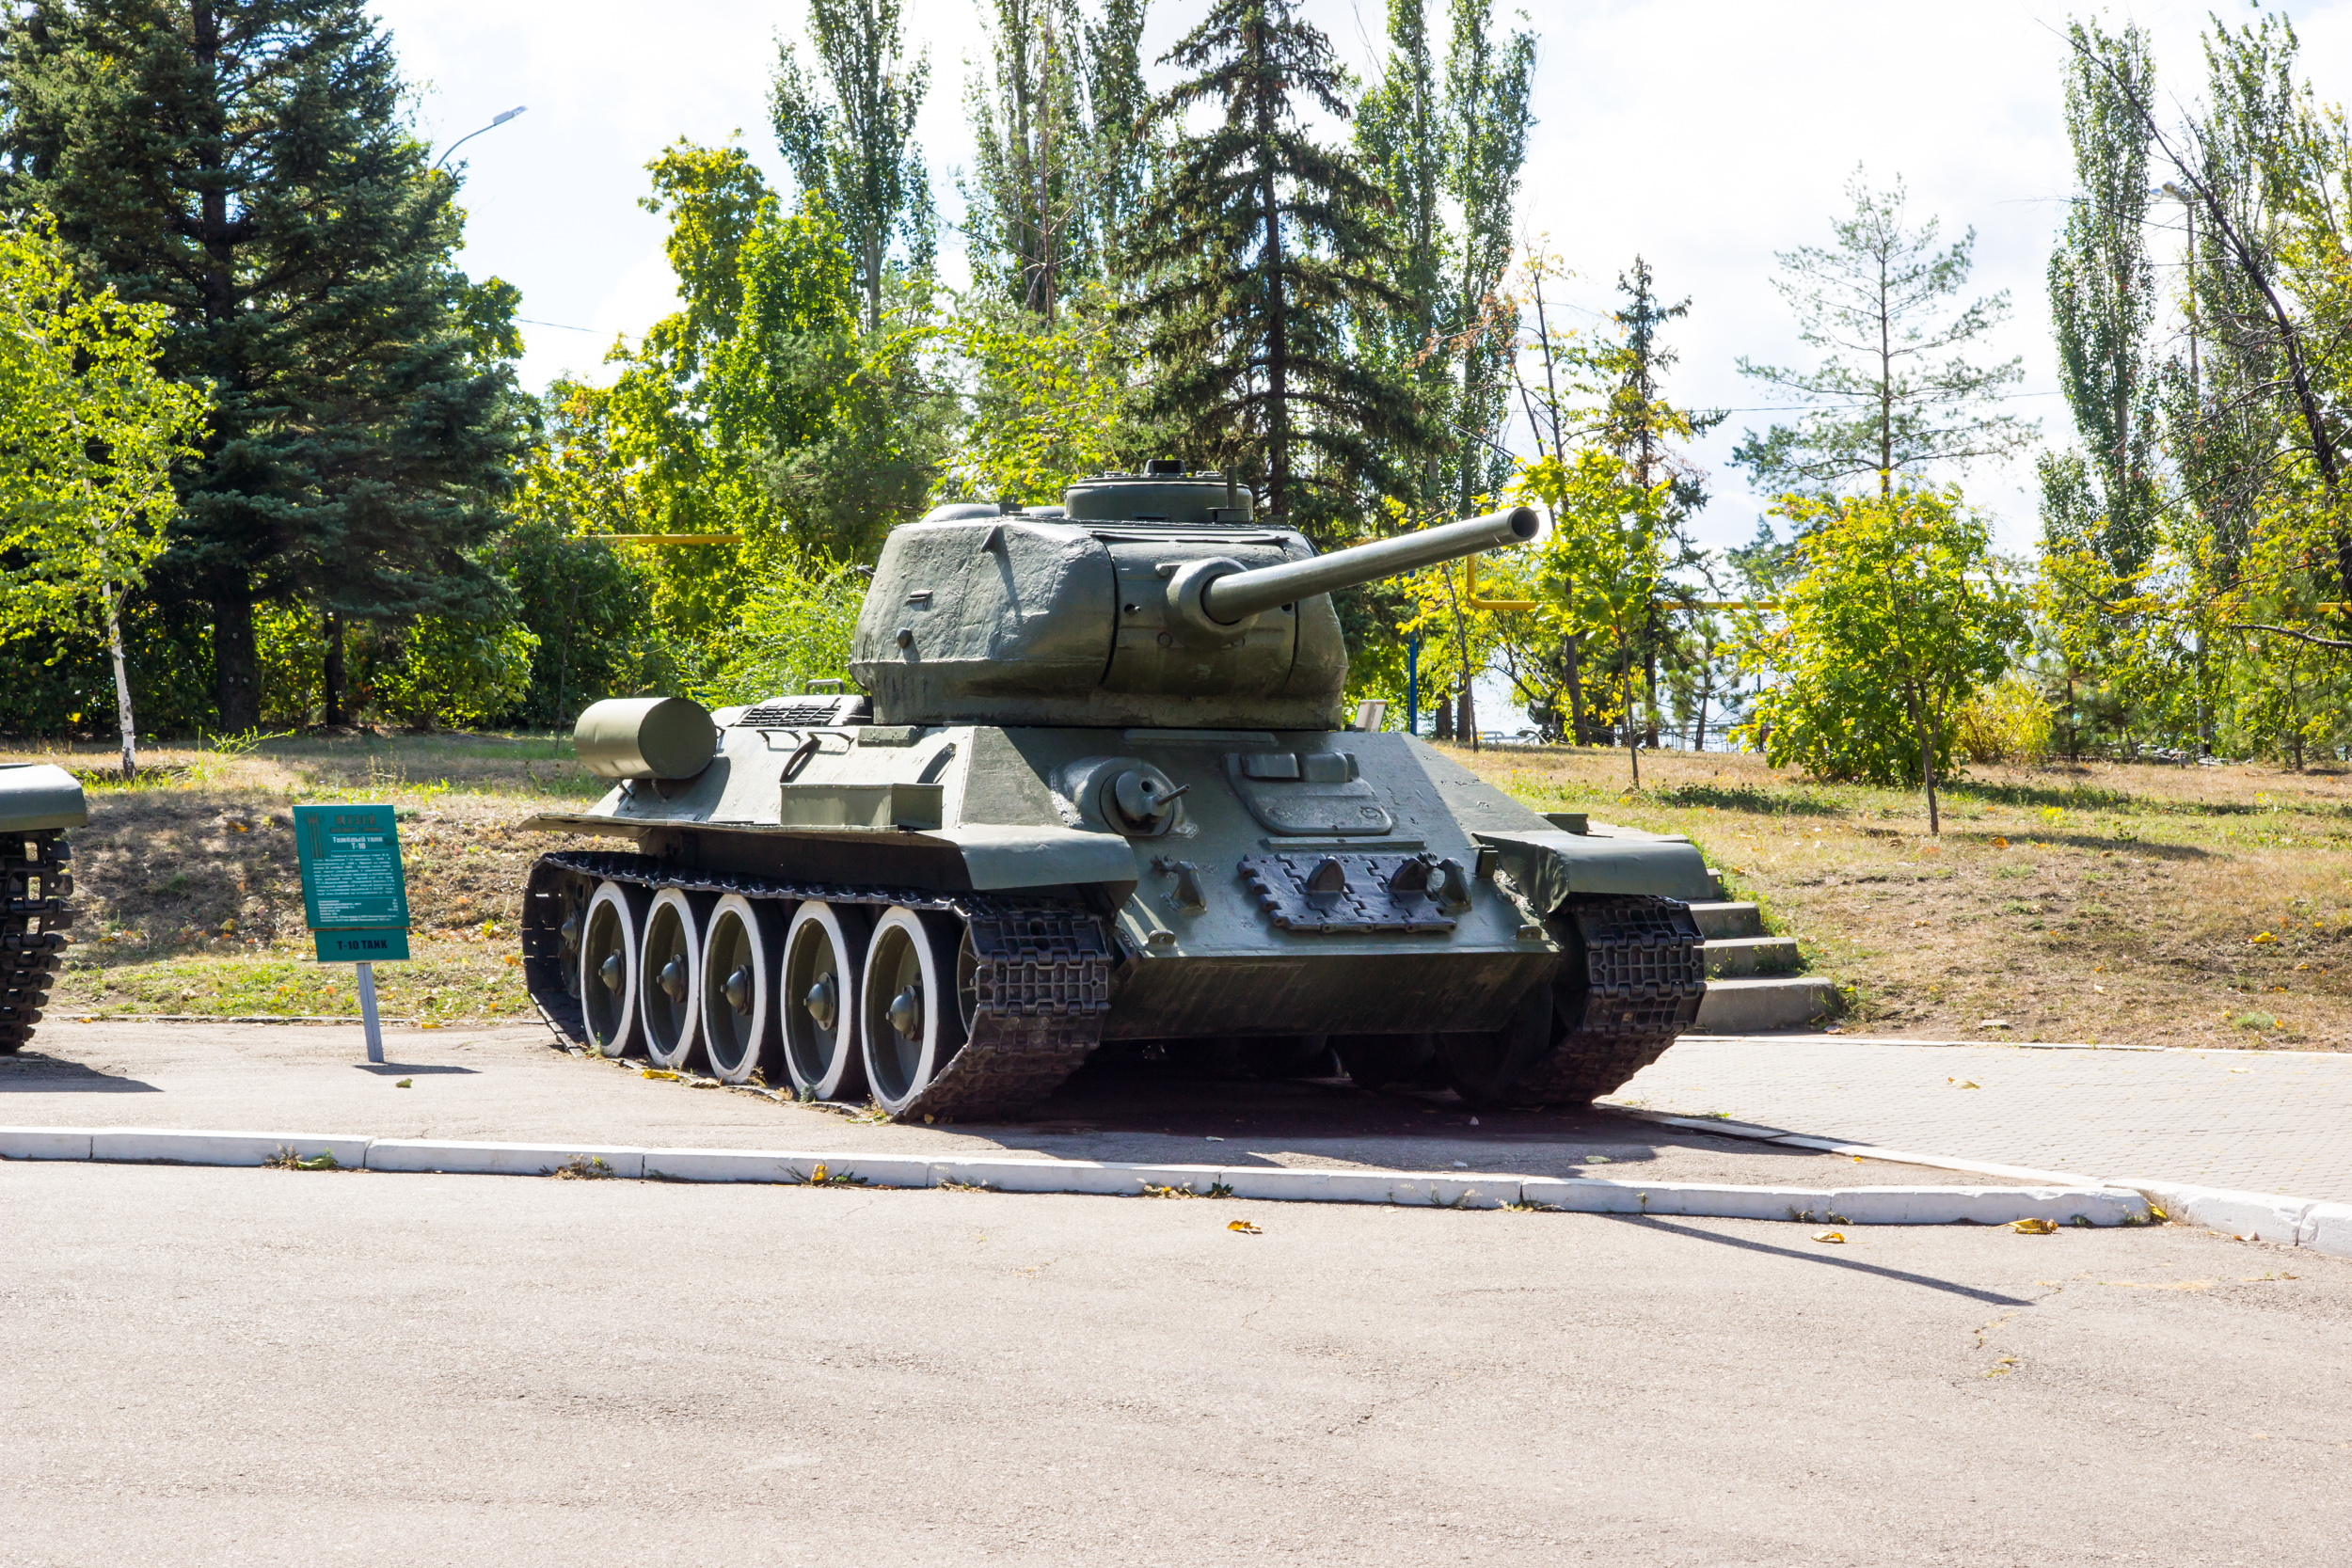 The legendary t-34 tank